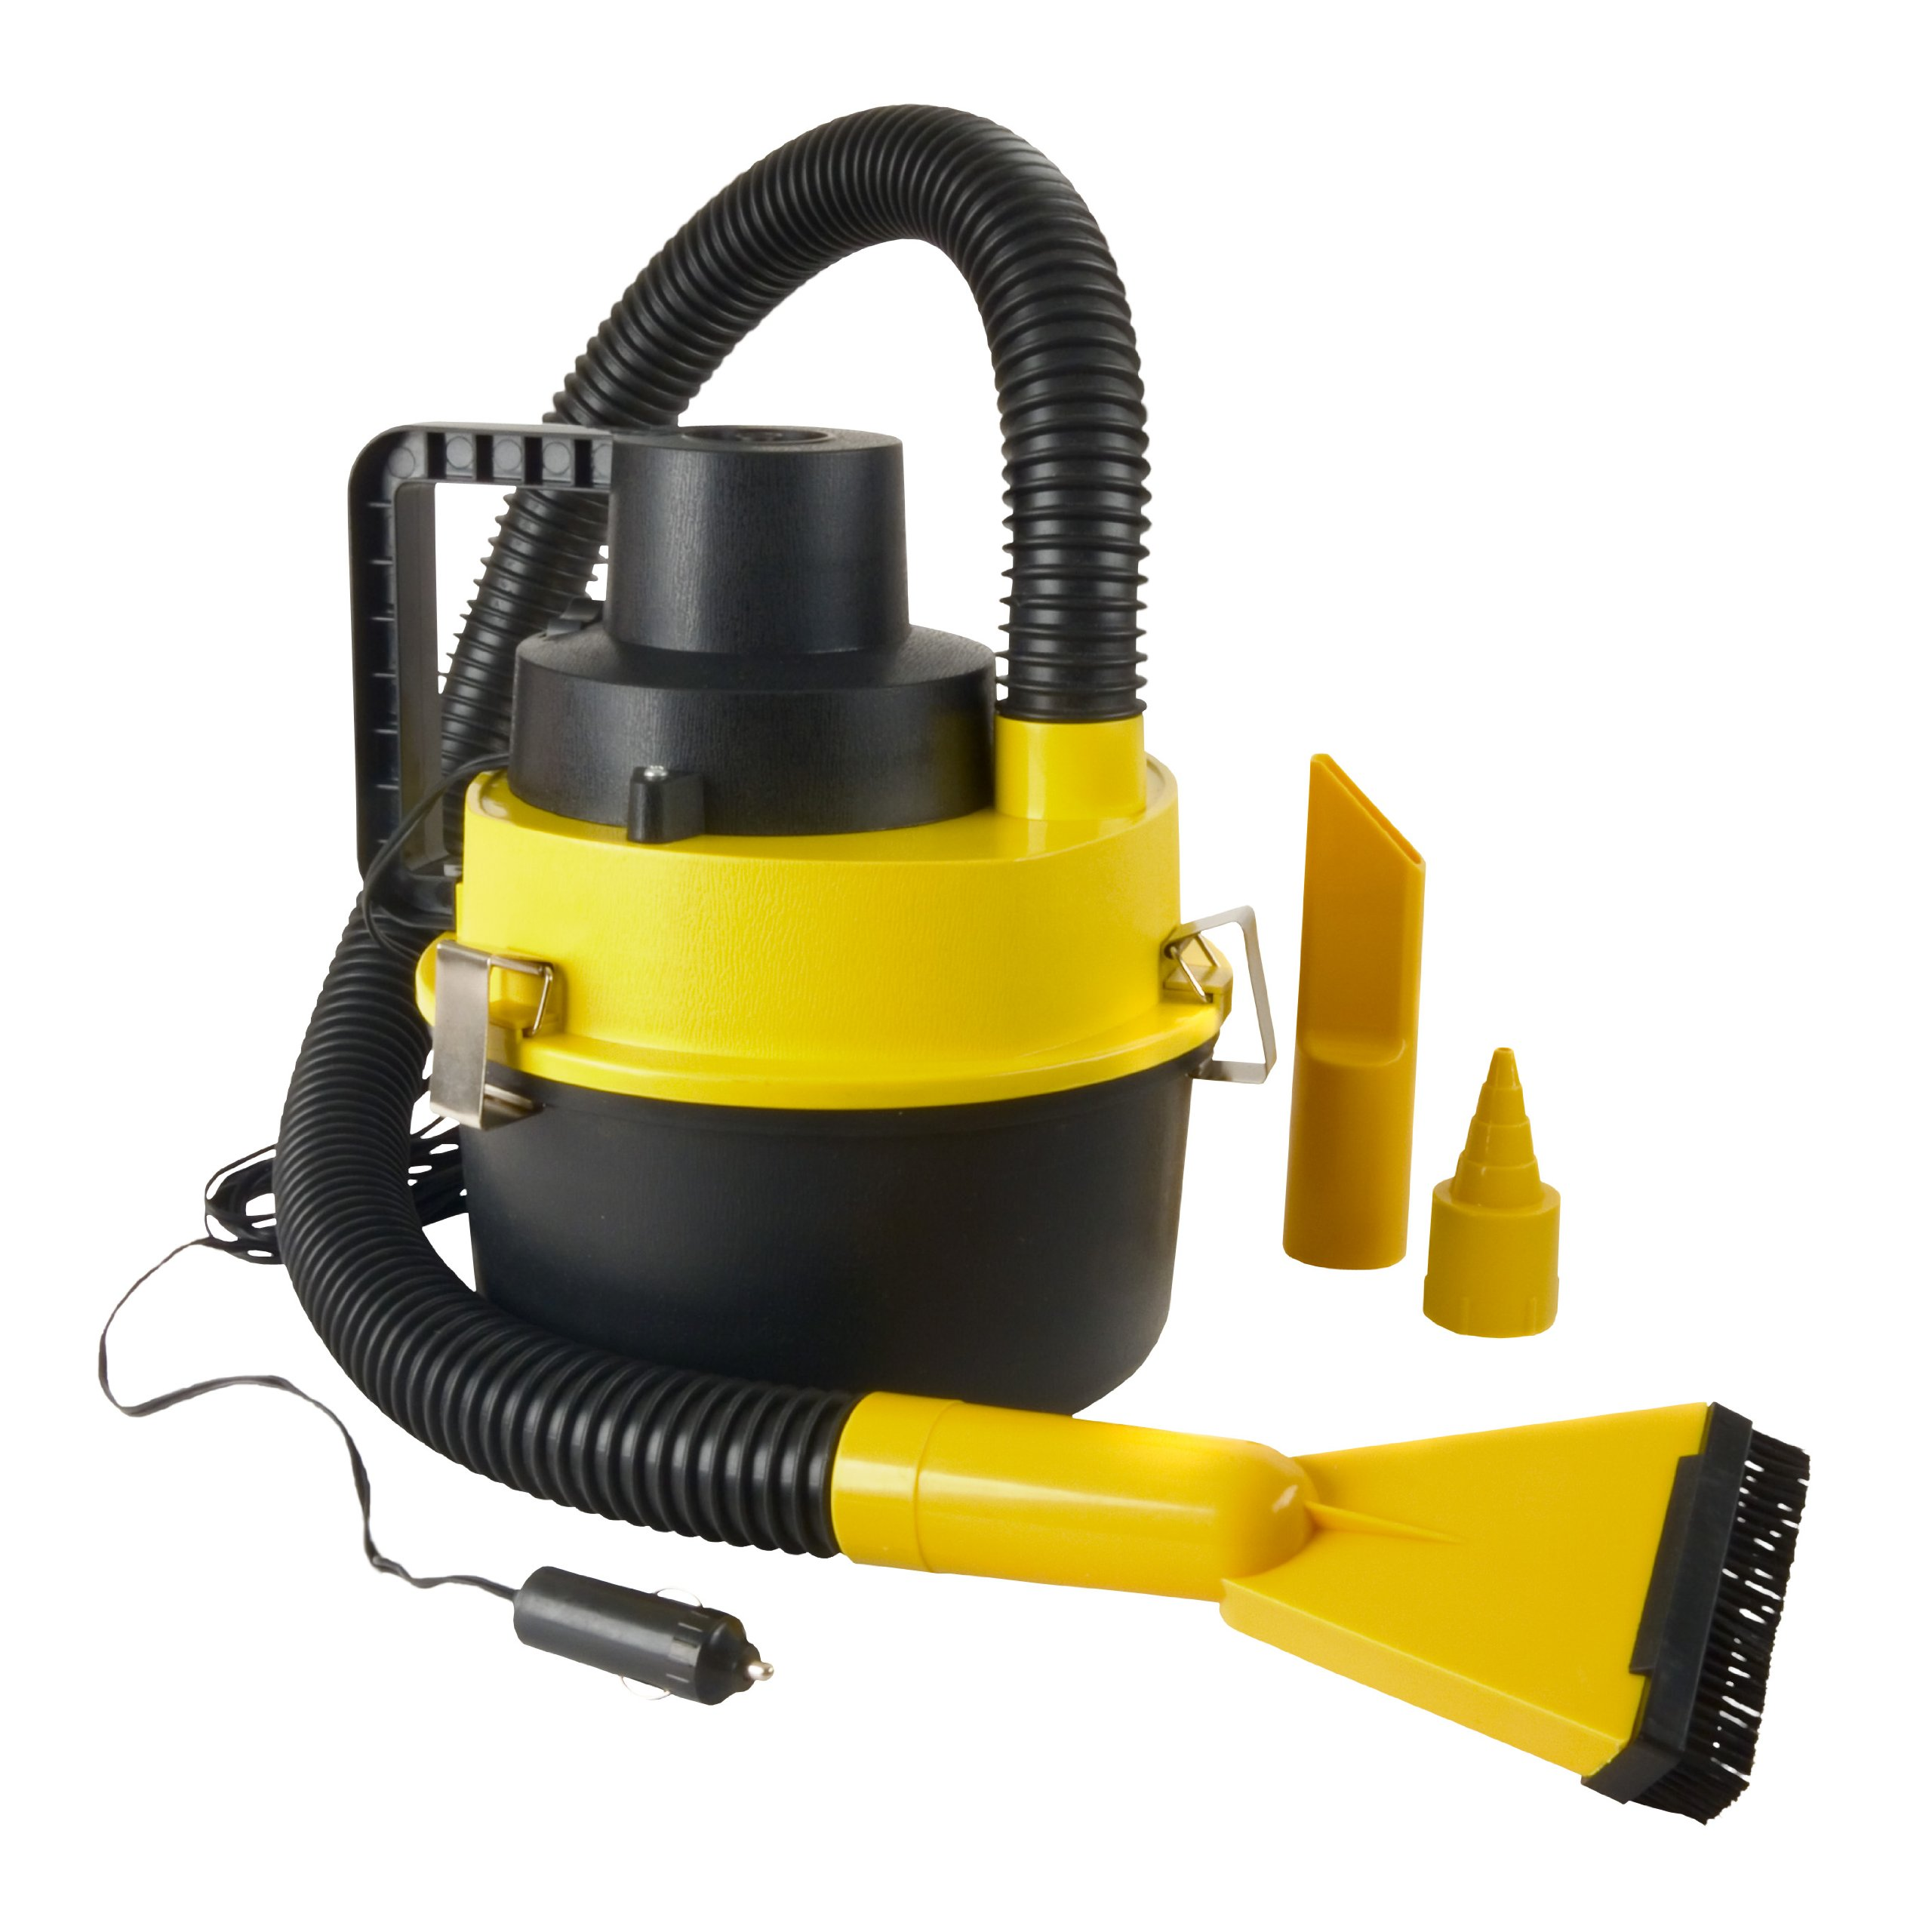 Wagan 750 Wet and Dry Ultra Vac with Air Inflator